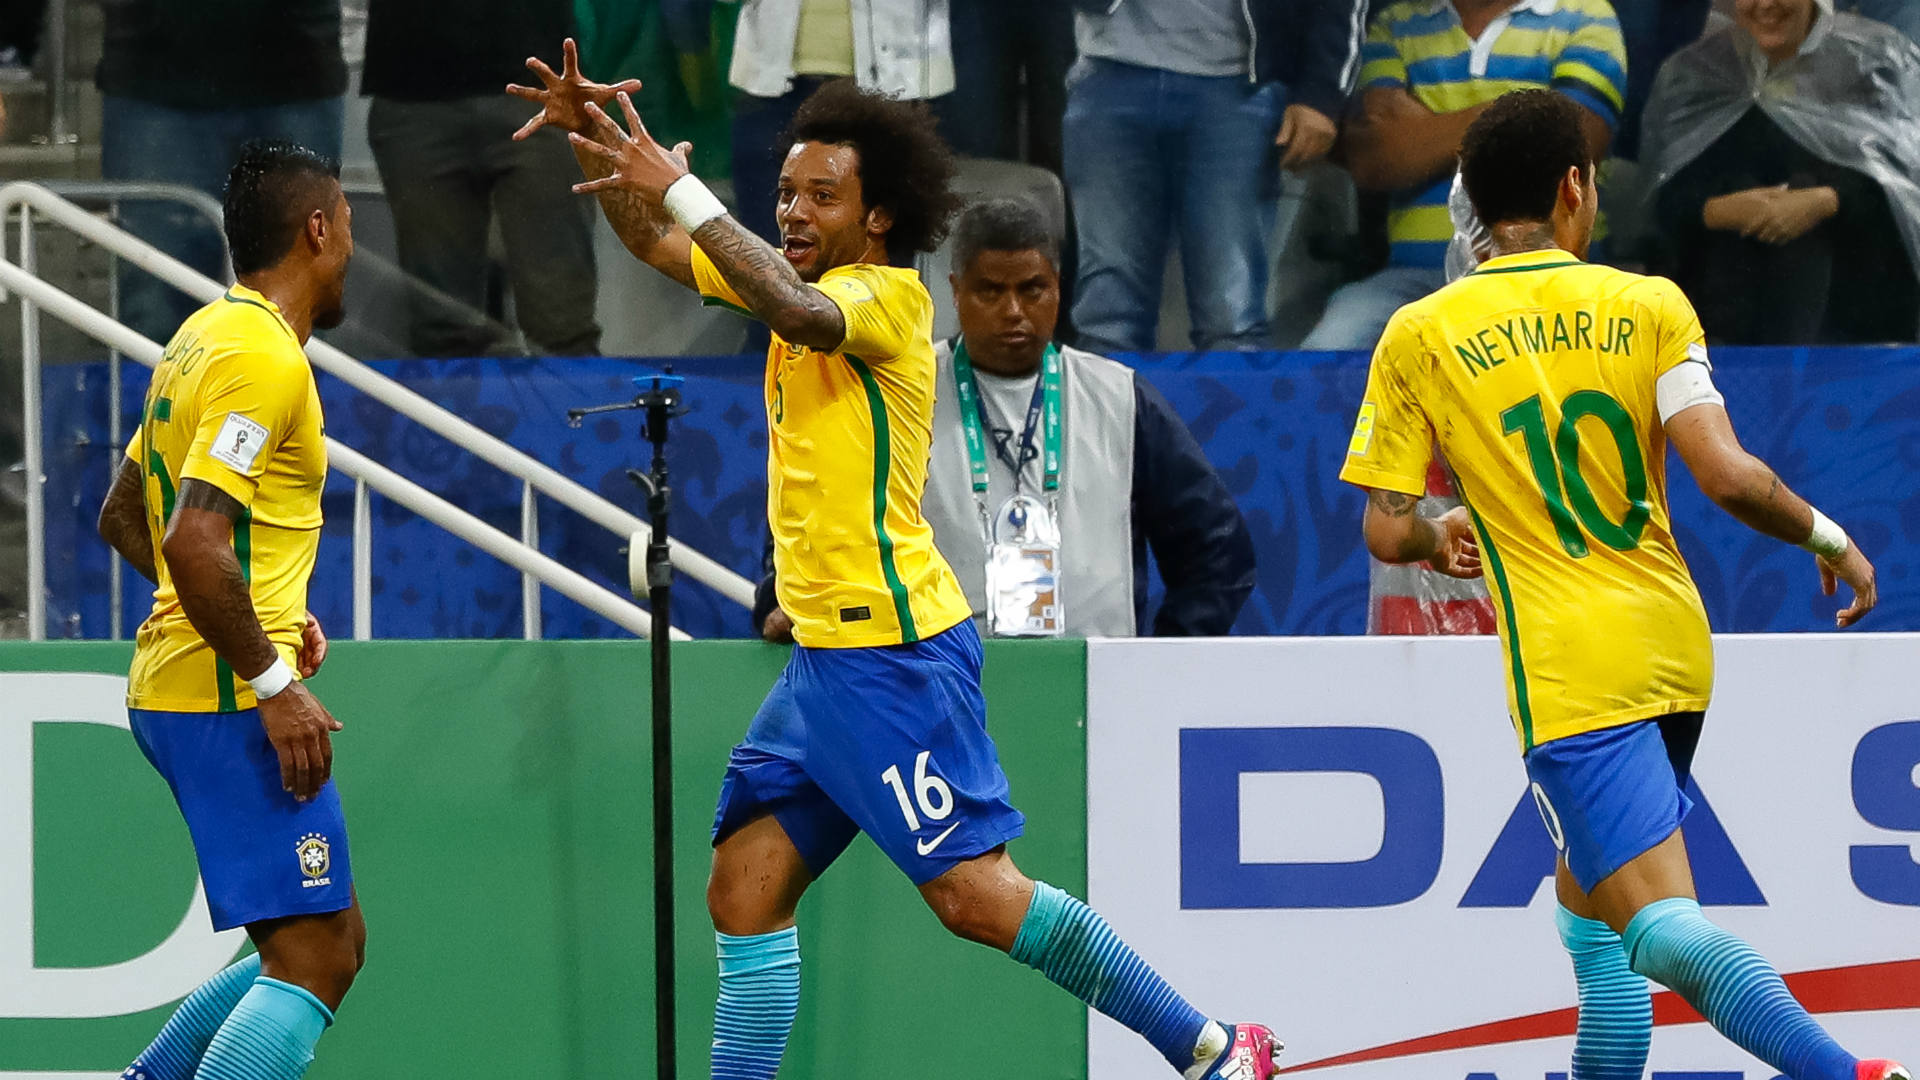 Brazil returns to top in FIFA rankings